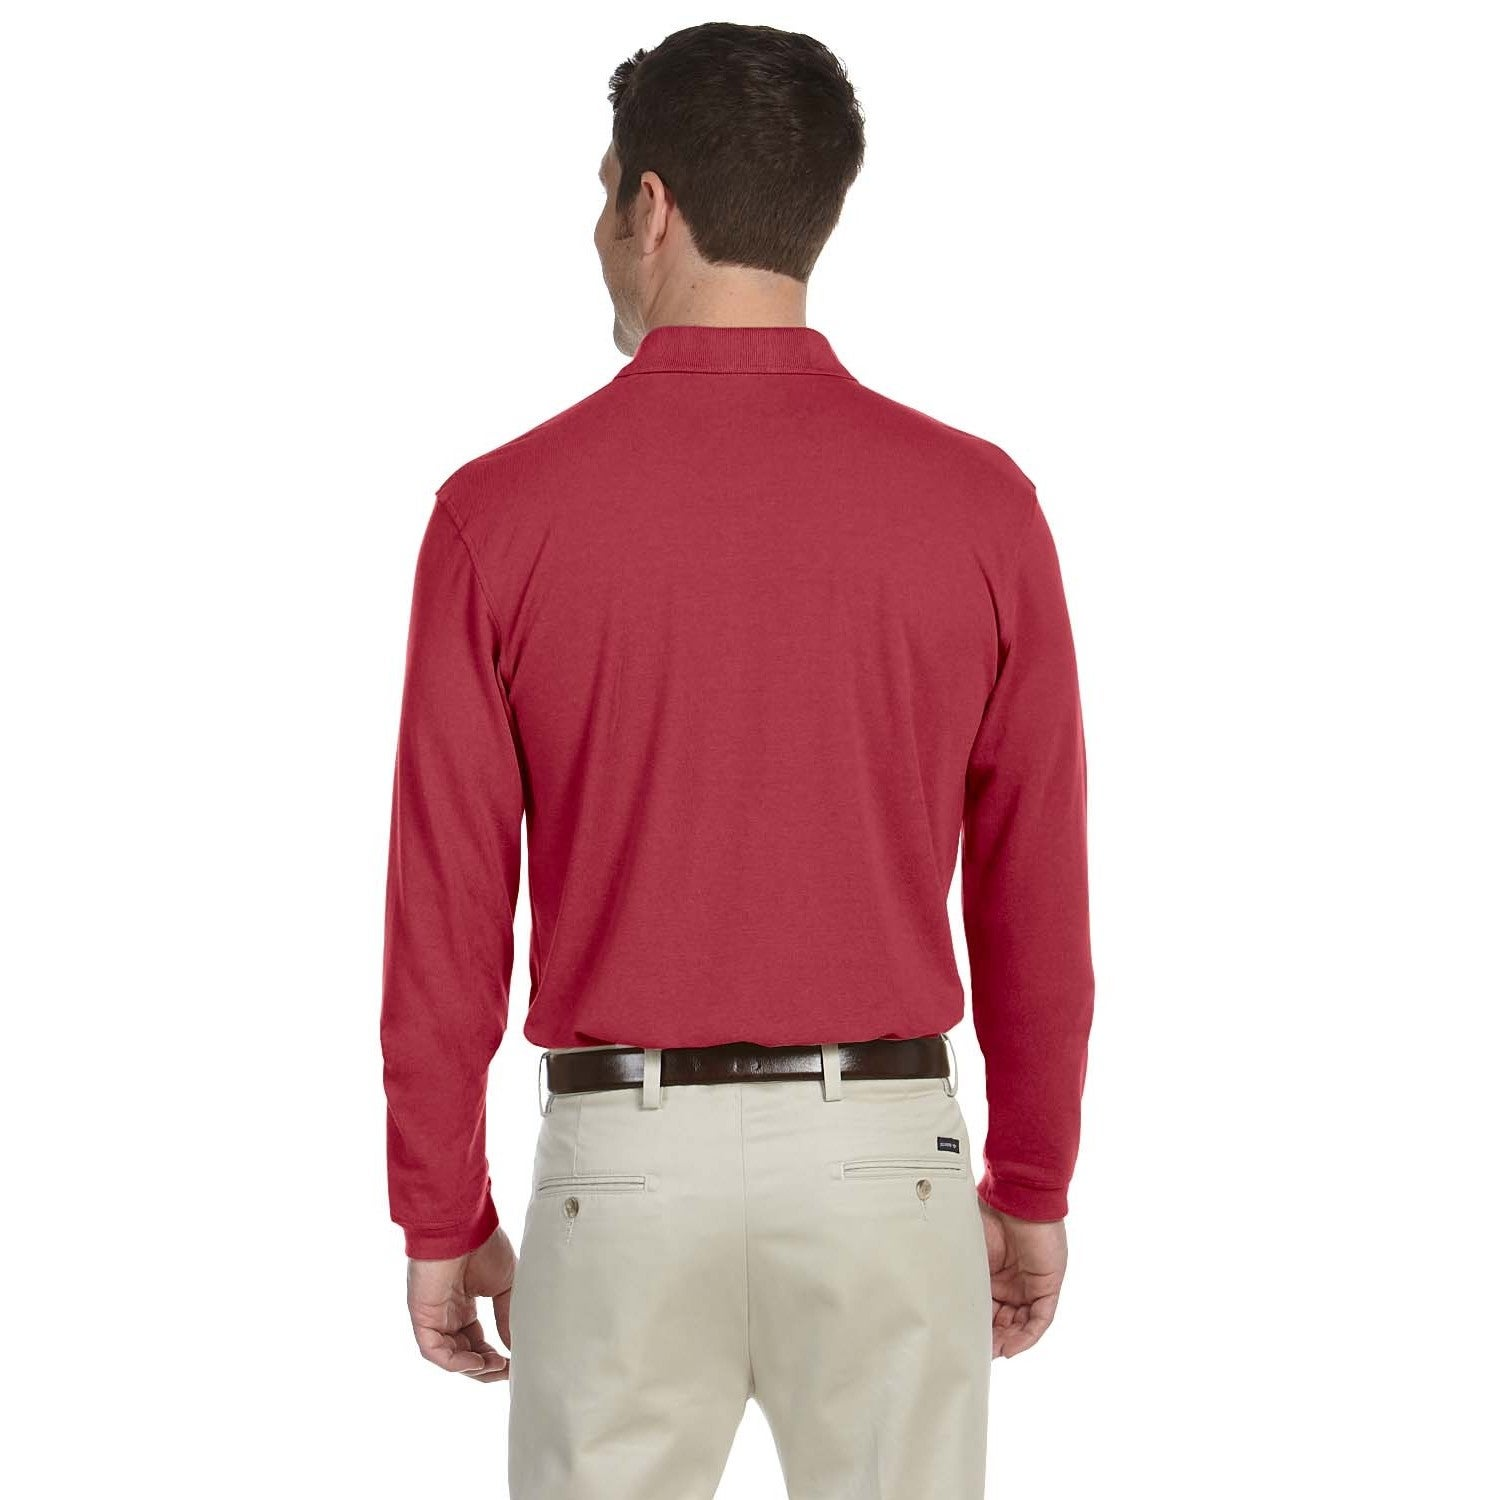 ad963b6c Mens Red Long Sleeve Polo Shirts – EDGE Engineering and Consulting ...